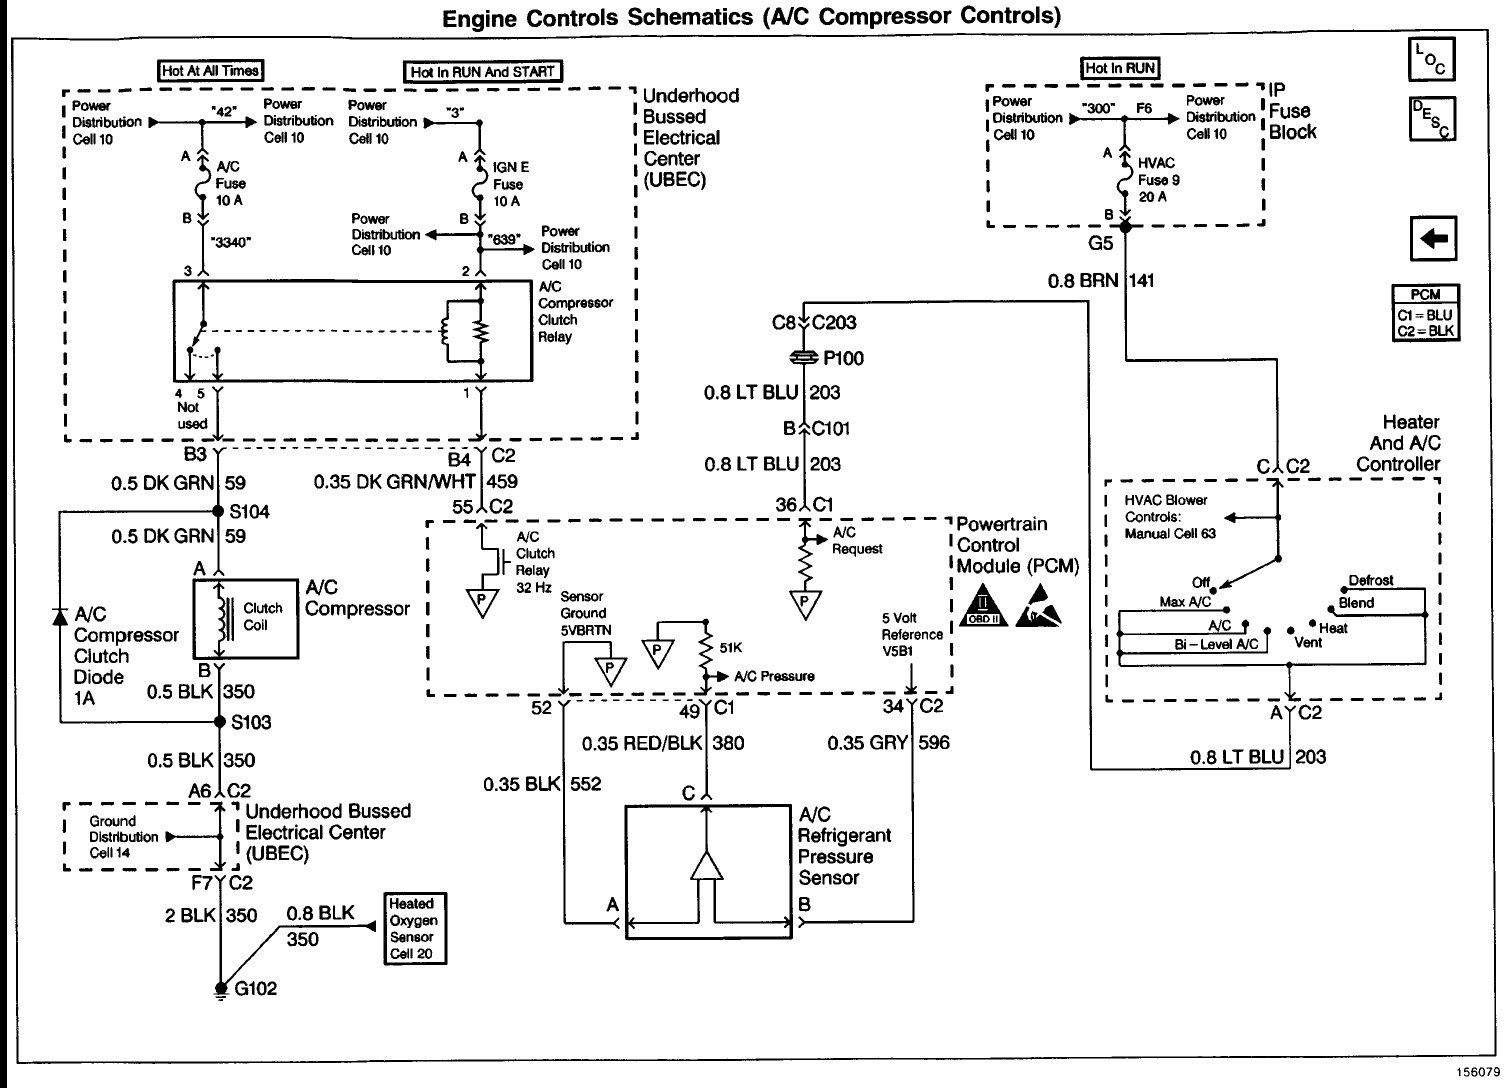 hight resolution of s10 pcm wiring schematic wiring diagram standards10 pcm wiring schematic wiring diagram blogs10 pcm wiring schematic